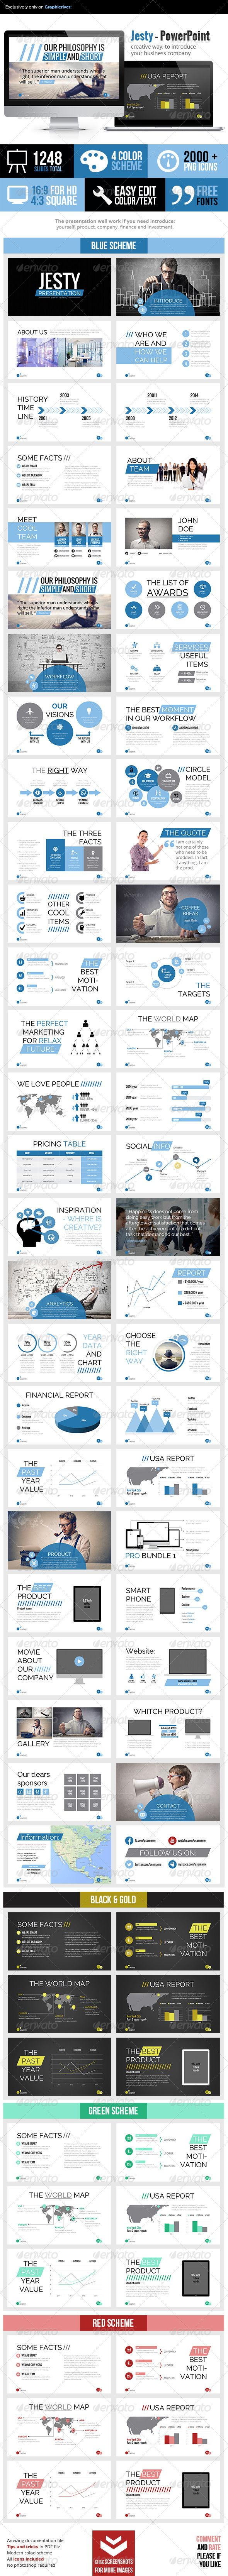 Jesty powerpoint presentation template update v10 jesty powerpoint presentation business powerpoint templates toneelgroepblik Image collections